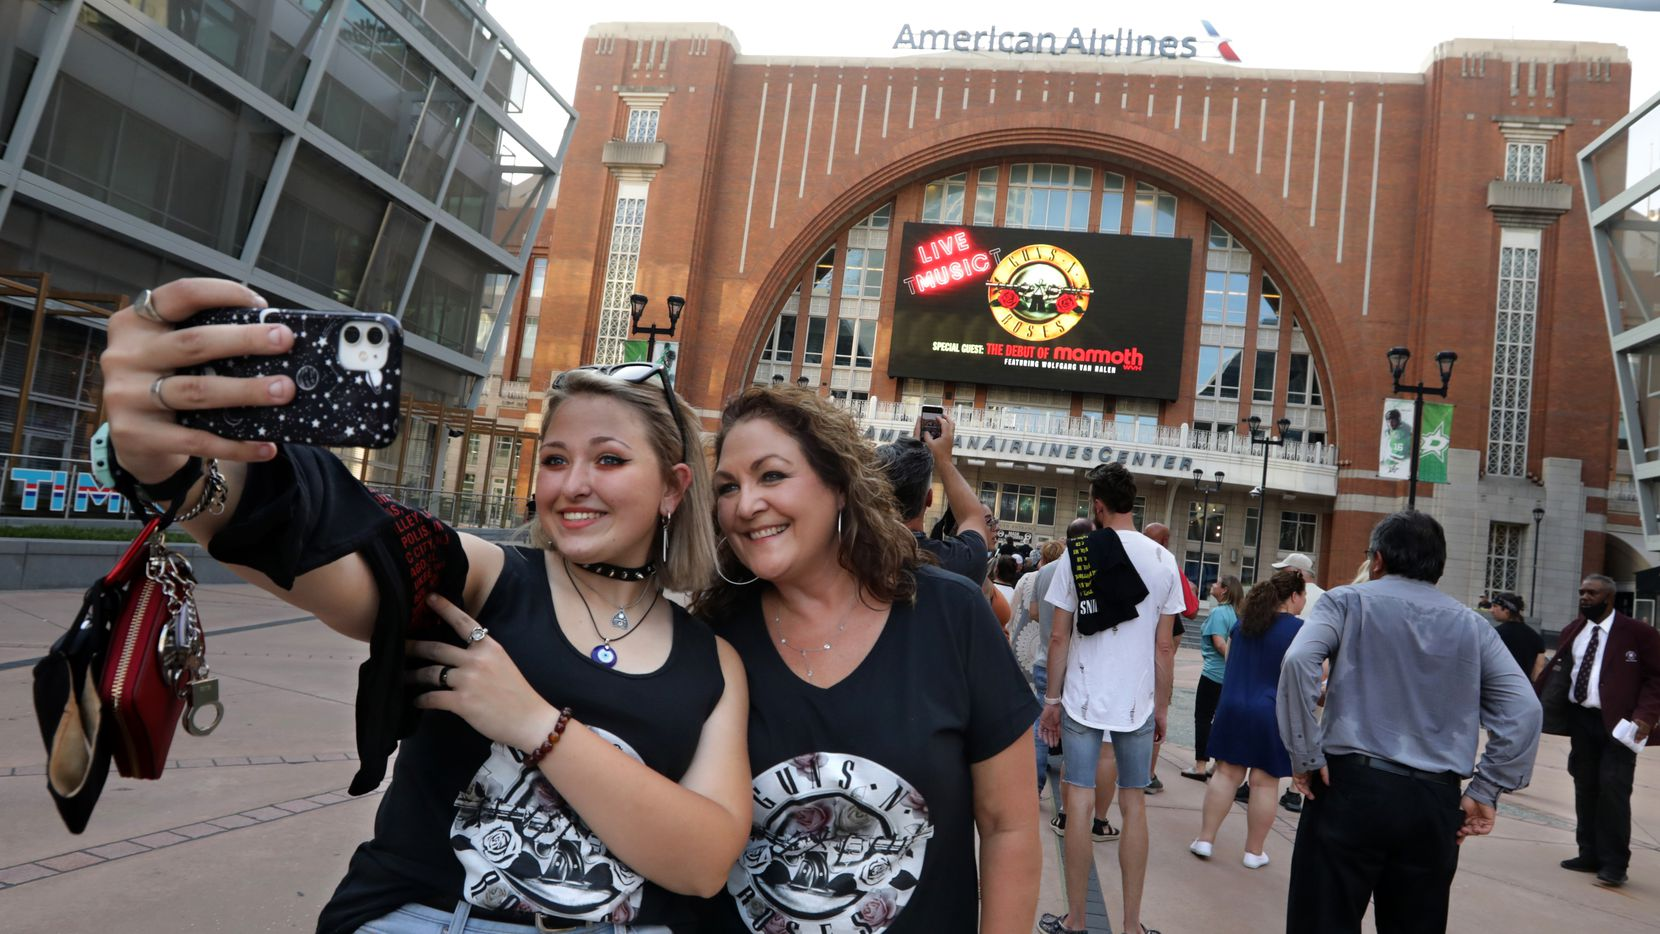 Emma Bradley, left, and Stacy Bradley take a selfie as fans line up to see Guns N' Roses at American Airlines Center on Wednesday.